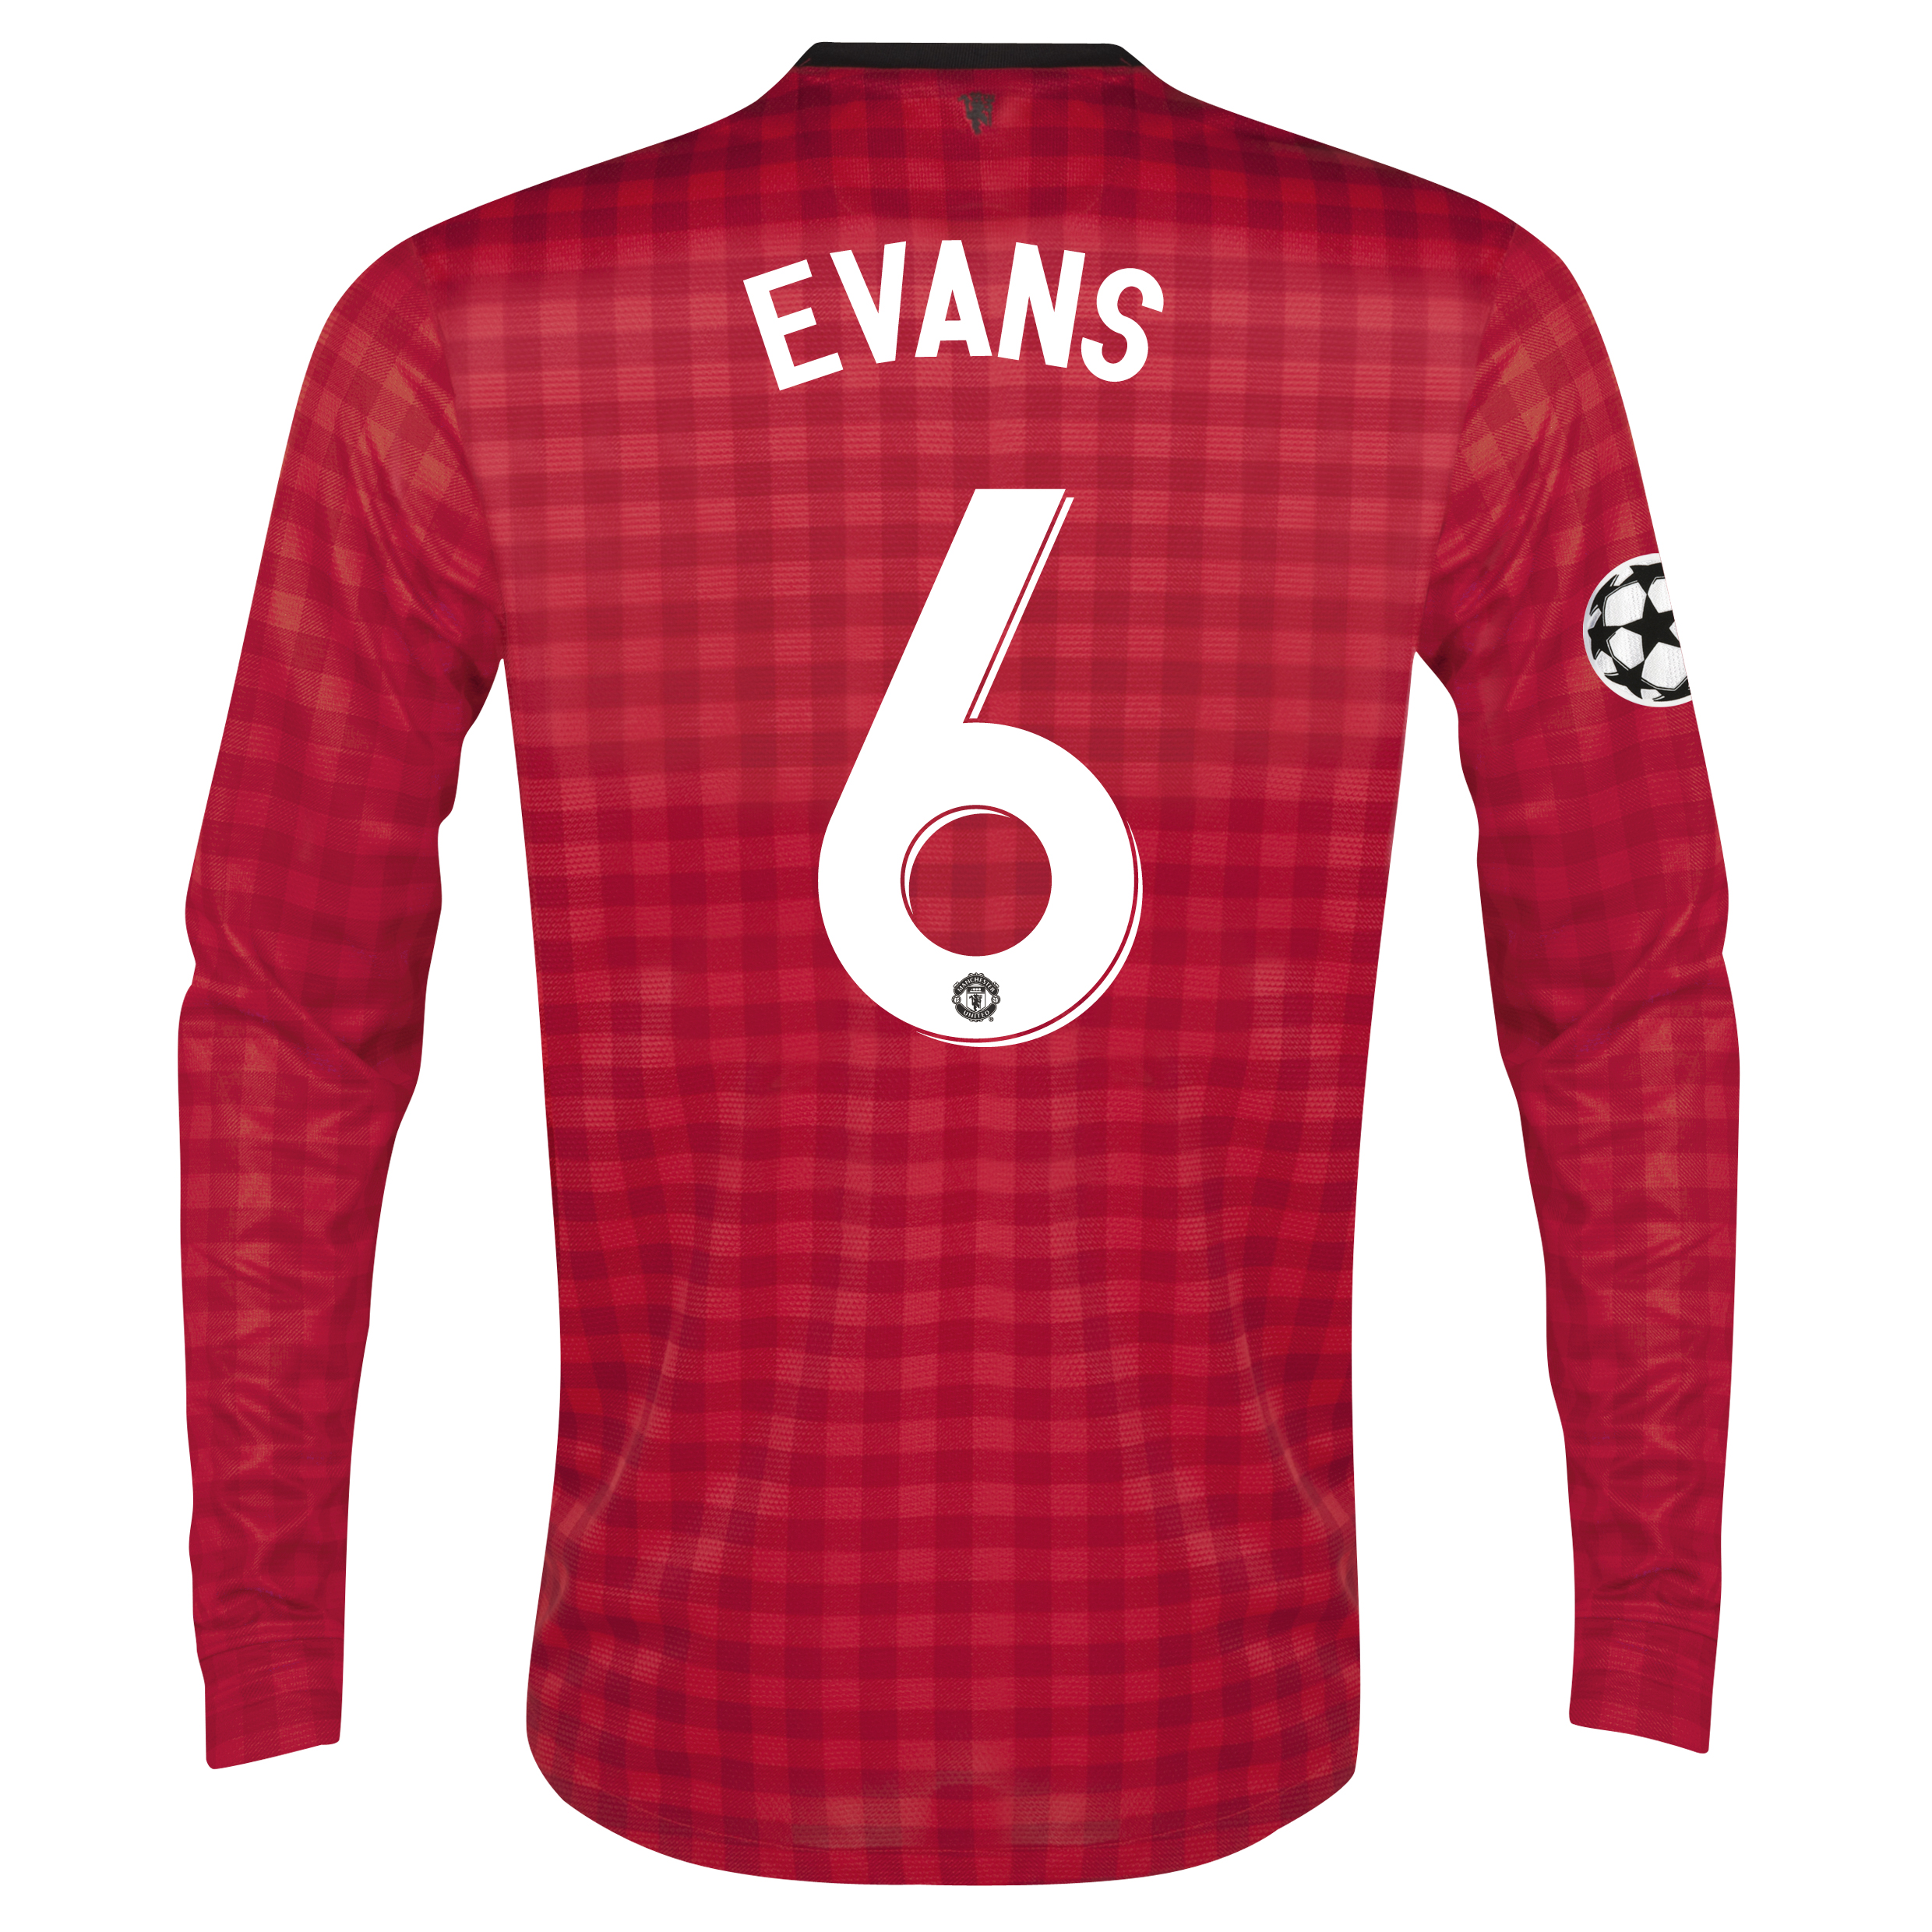 Man United UEFA Champions League Home Shirt 2012/13 - Long Sleeved with Evans 6 printing